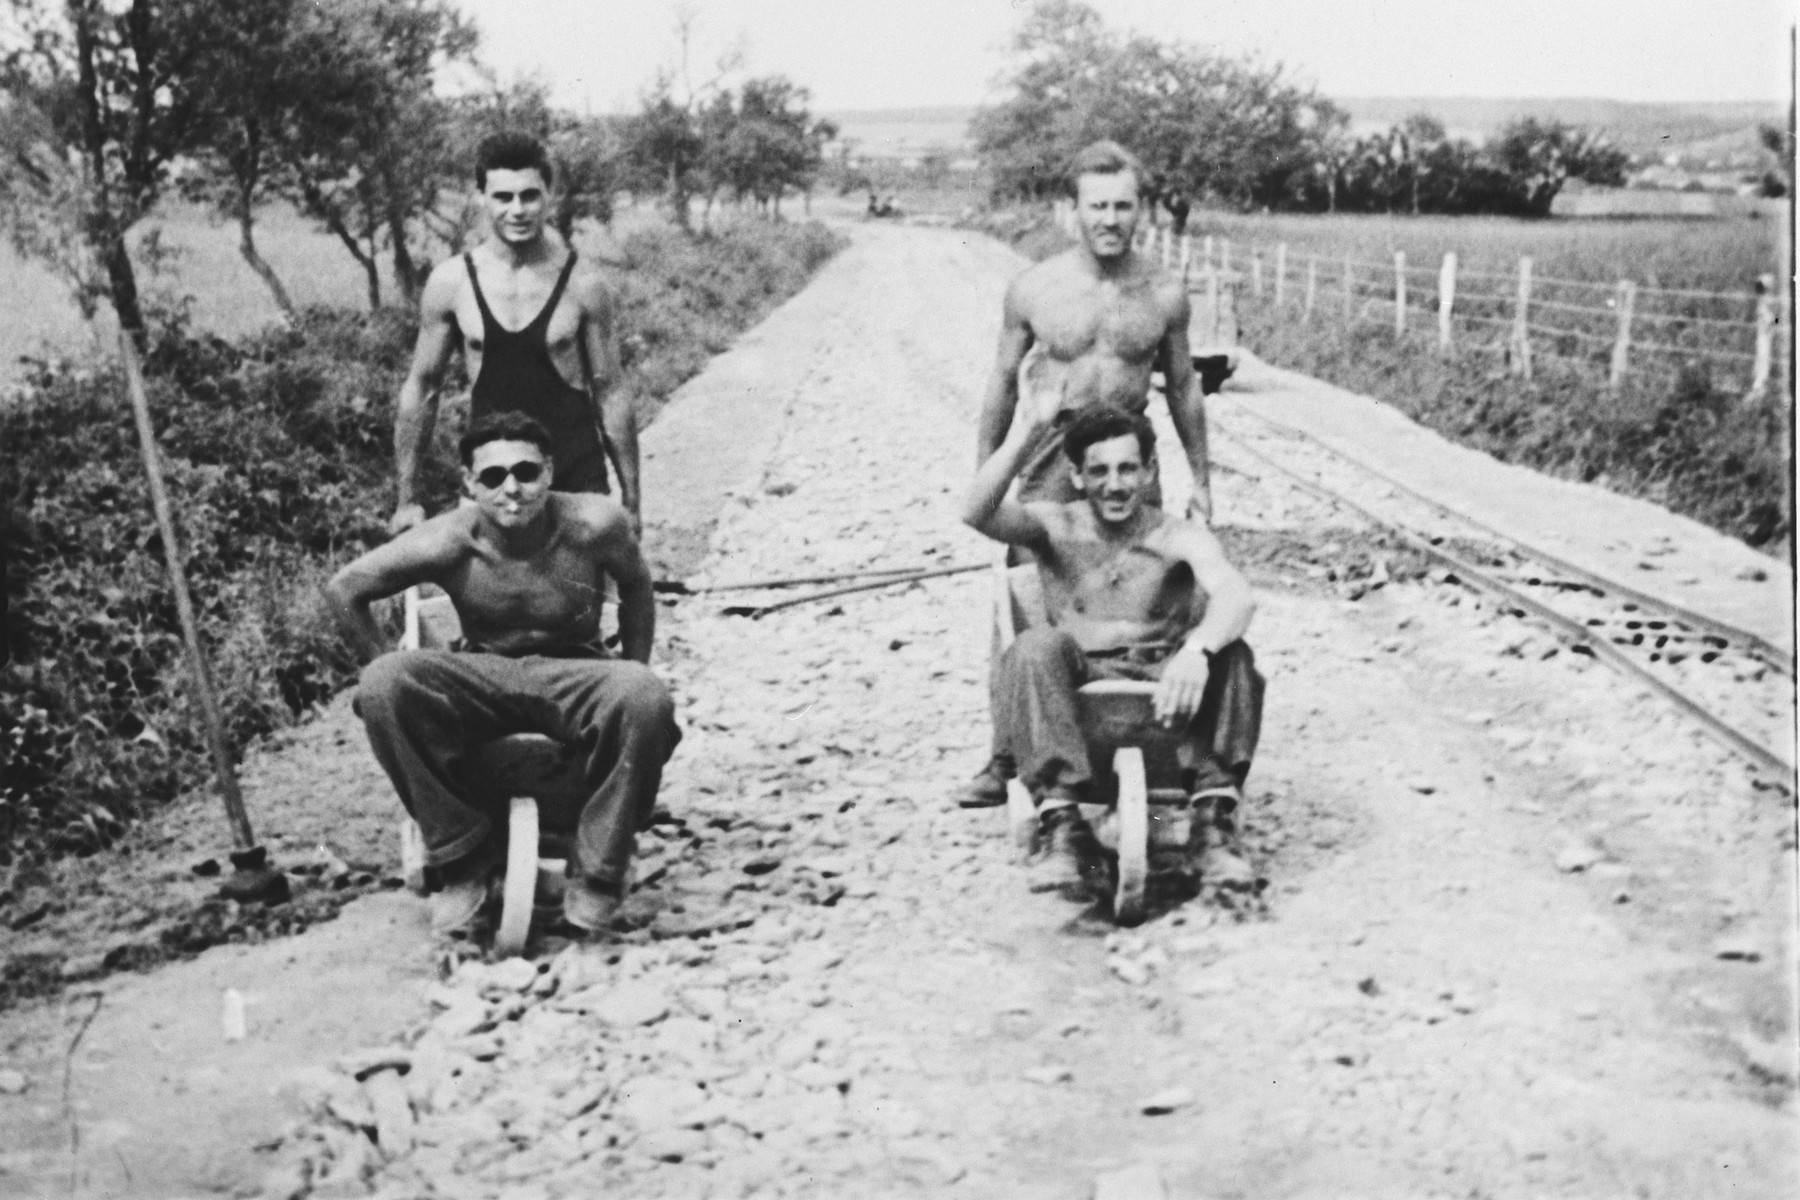 Members of a Hungarian labor battalion have a wheelbarrow race down a dirt road in Koszeg.